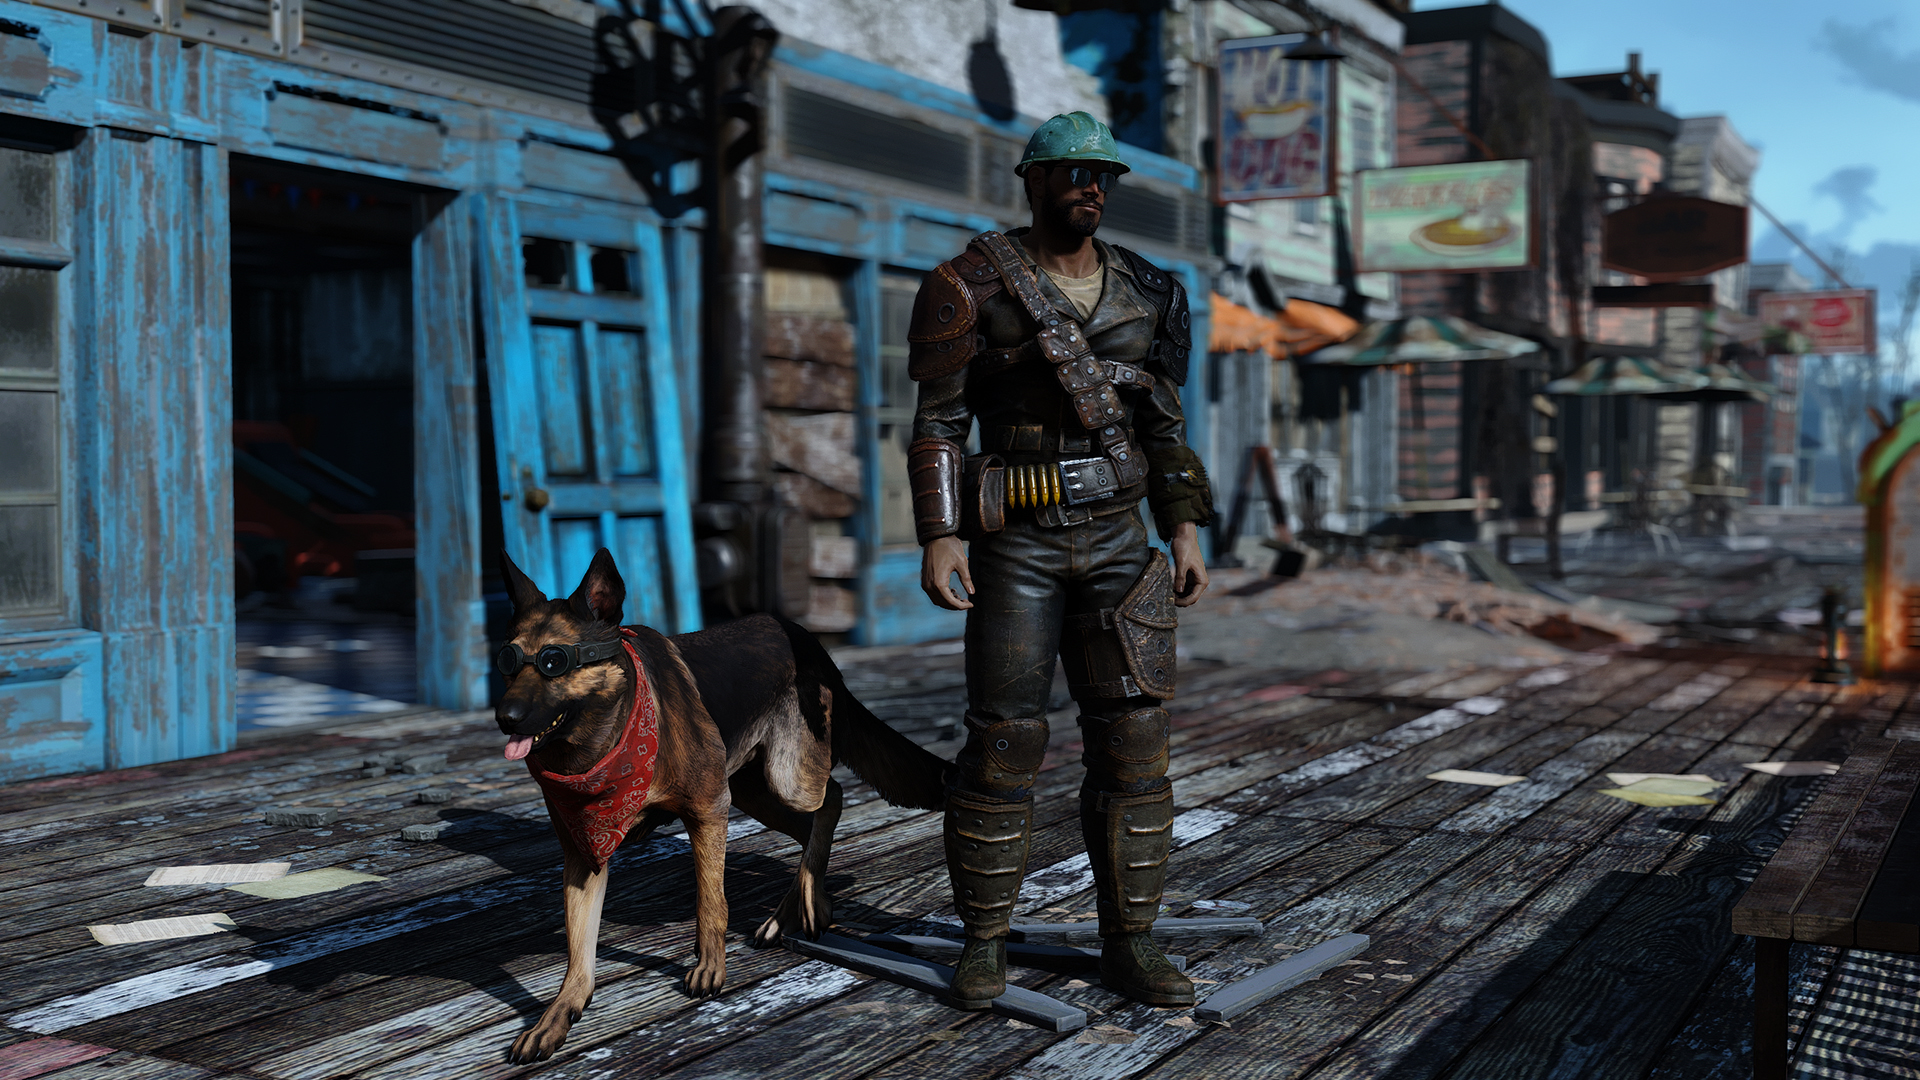 Grim Wolf ReShade Presets - Fallout 4 / FO4 mods